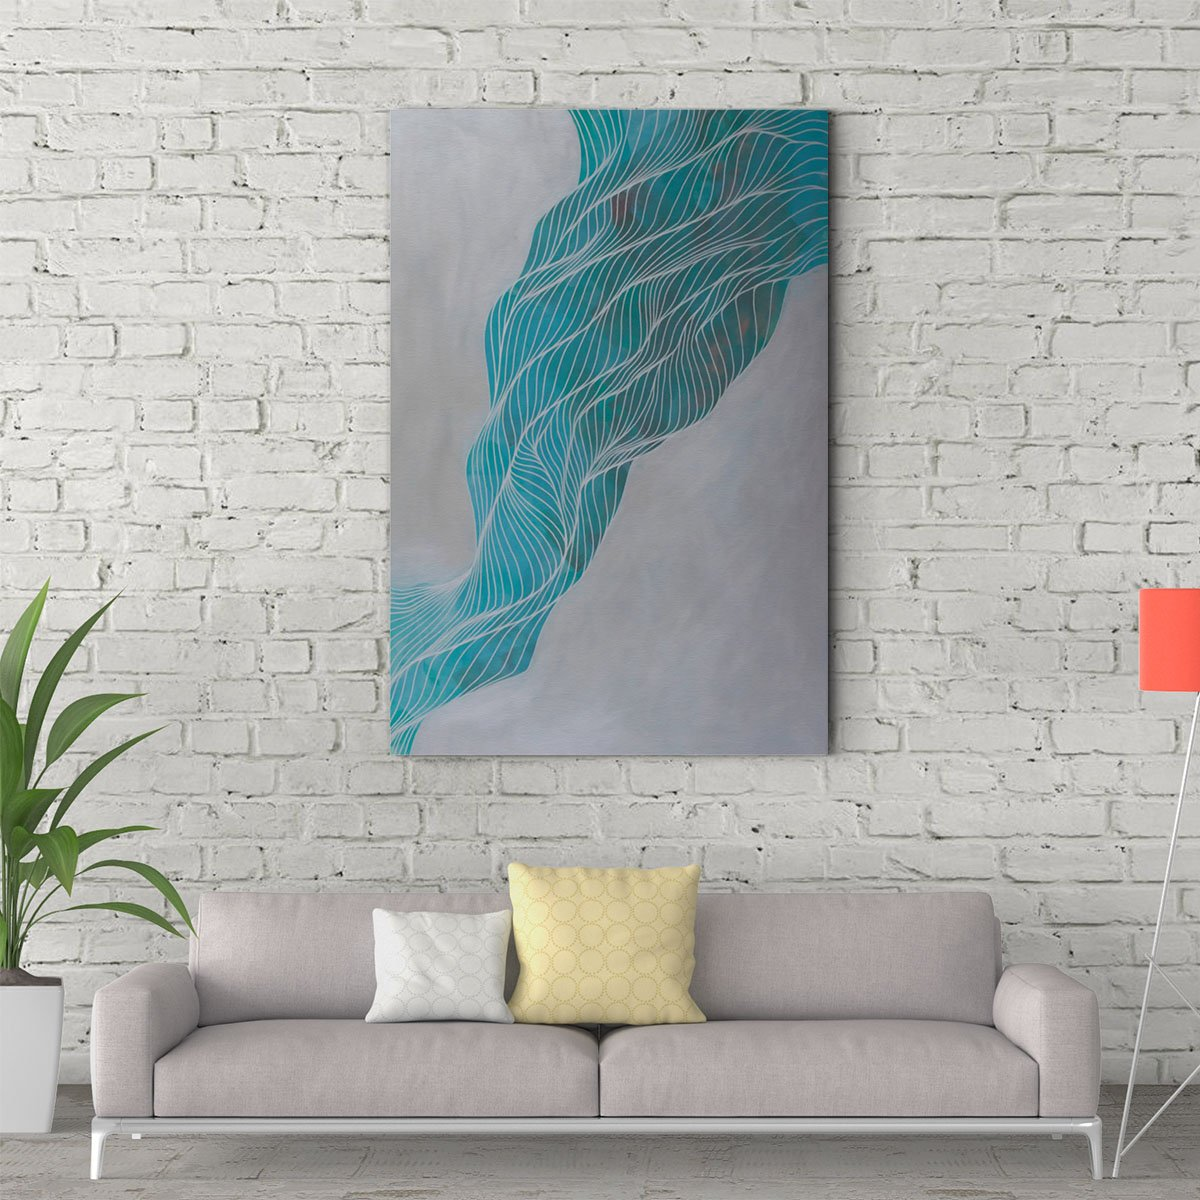 Dancing lines abstract decorative painting 001